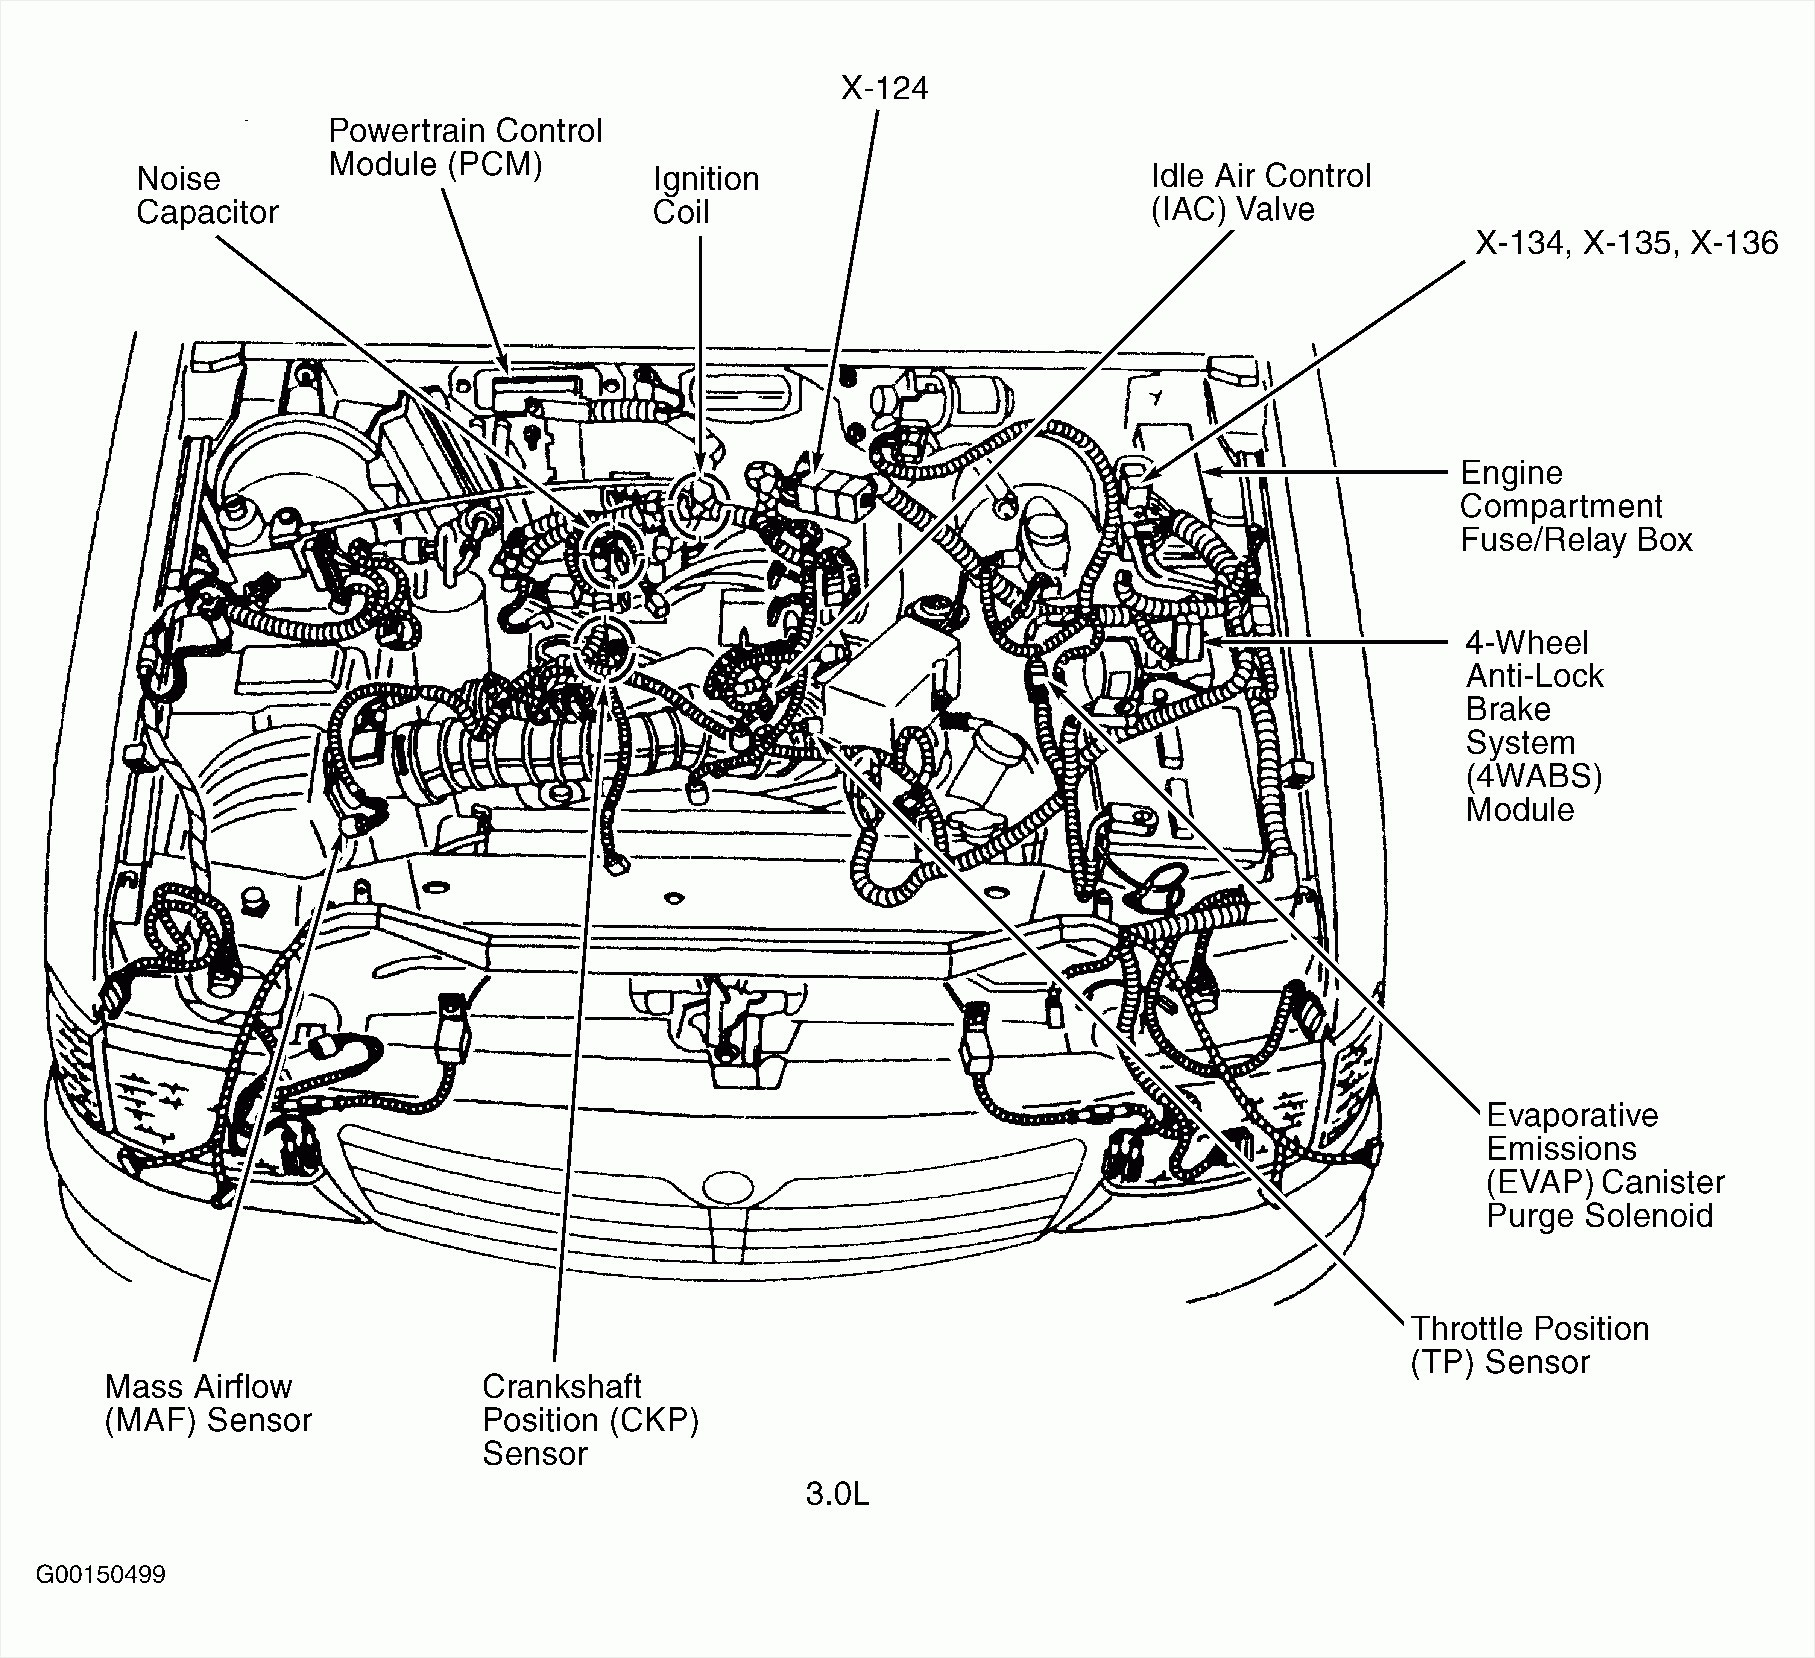 A10 Engine Compartment Diagram Great Installation Of Wiring Mci Bus 1997 Toyota 4runner 3 0 V6 Library Rh 18 Bloxhuette De